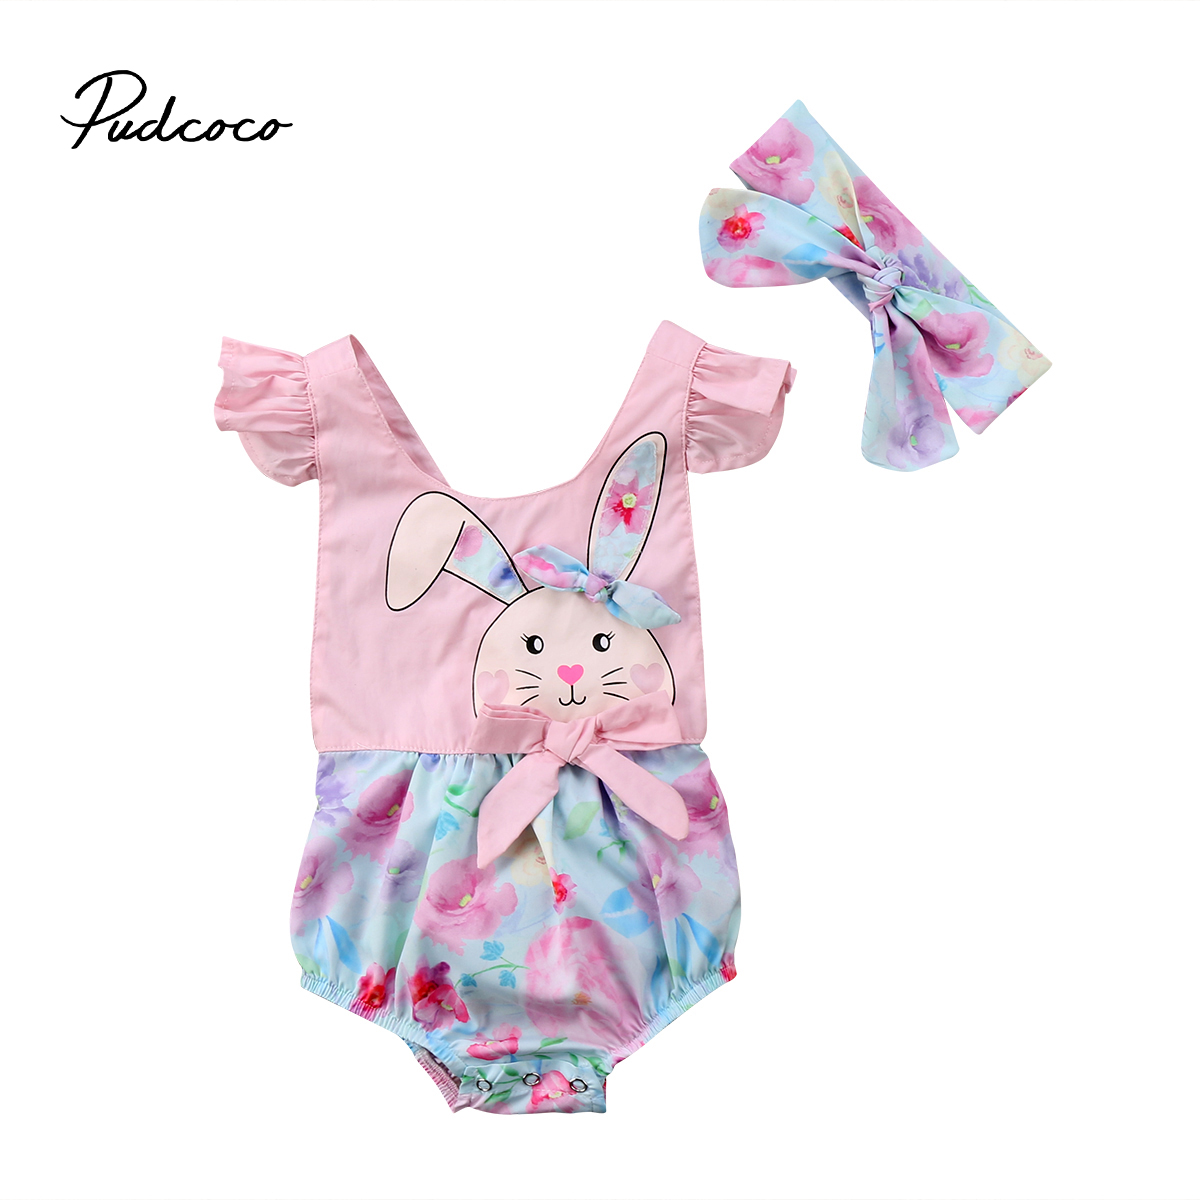 2018 New Easter Floral Romper Newborn Baby Girl Bunny Romper Flying Sleeve Jumpsuit Outfits Summer Flower Clothes 0-24M 2017 floral baby romper newborn baby girl clothes ruffles sleeve bodysuit headband 2pcs outfit bebek giyim sunsuit 0 24m